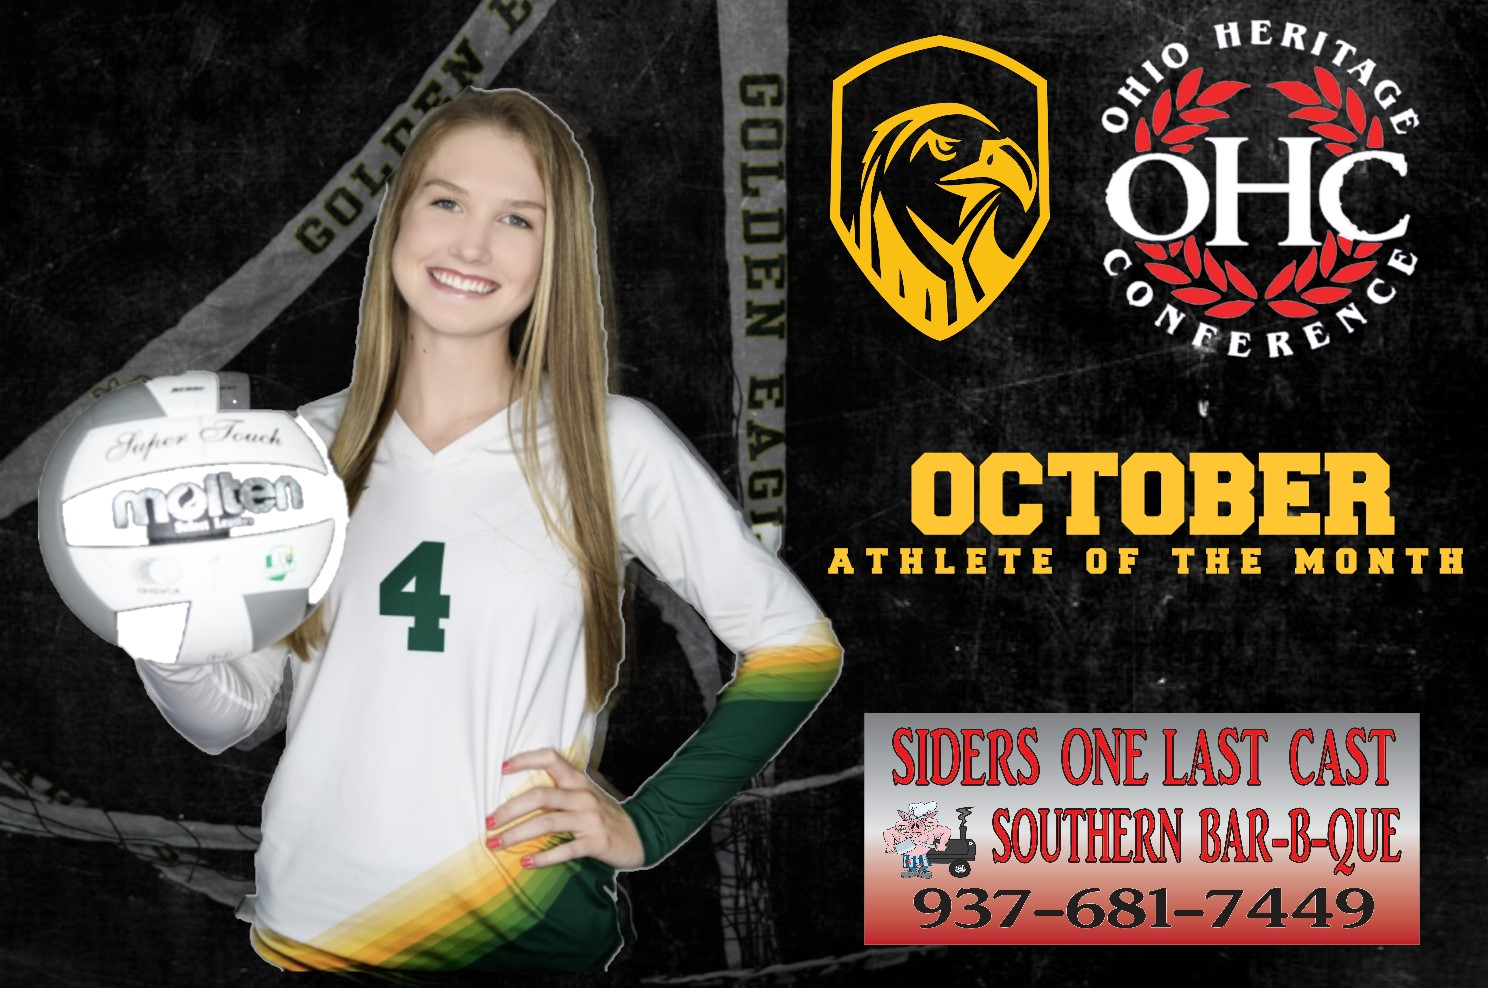 Long Earns OHC October Athlete of the Month